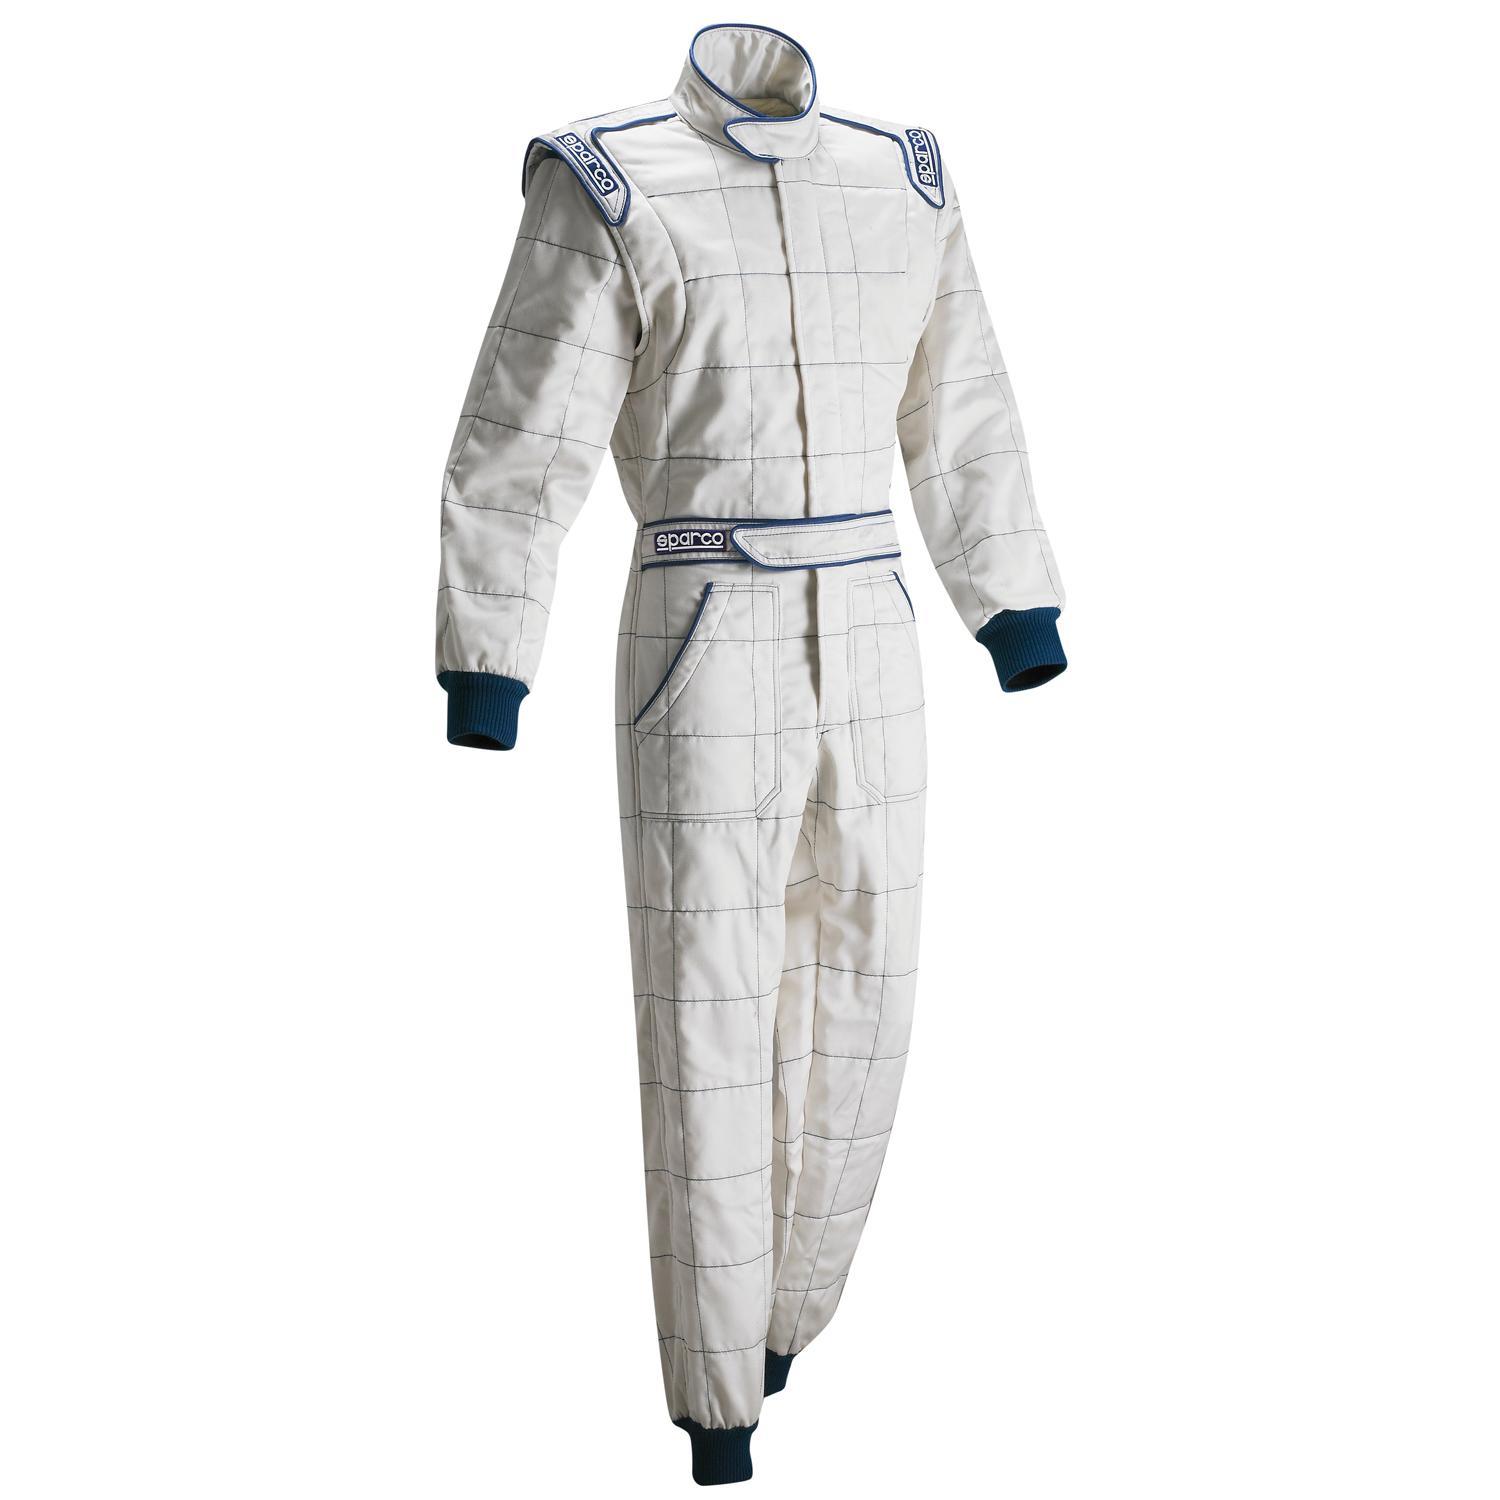 Sparco Racing Suits Sparco Sparco Race/rally Suit